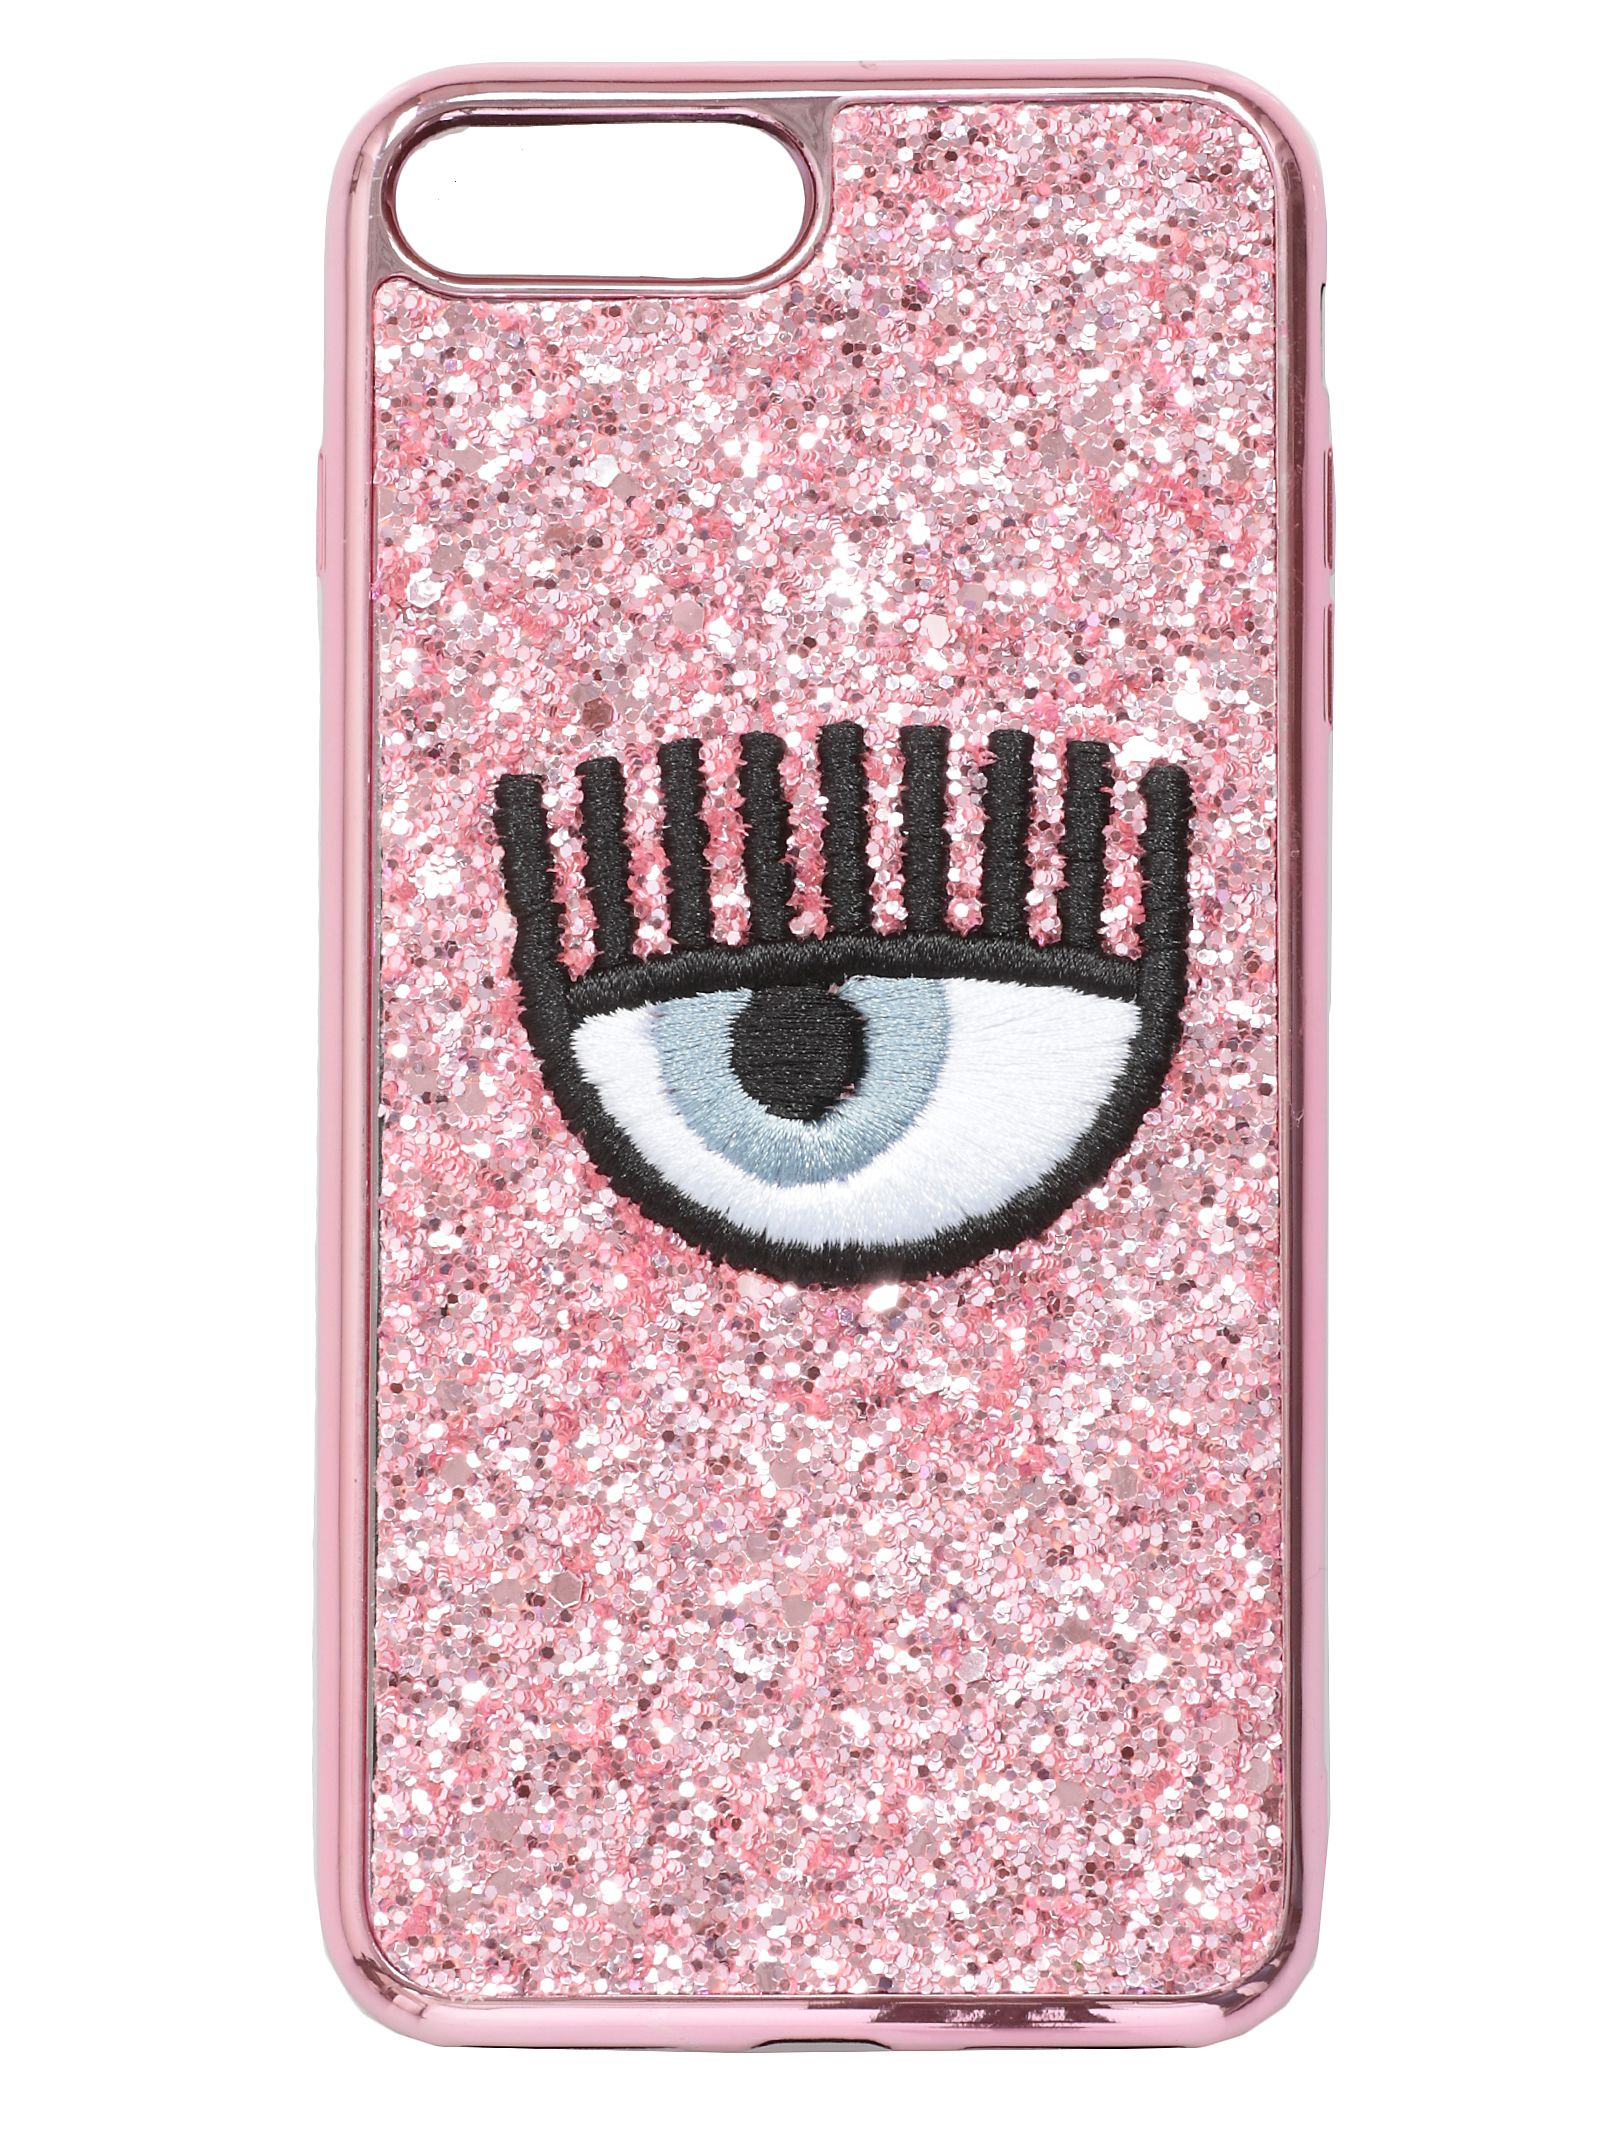 new product d636c b2926 Chiara Ferragni Iphone 7/8 Plus Cover